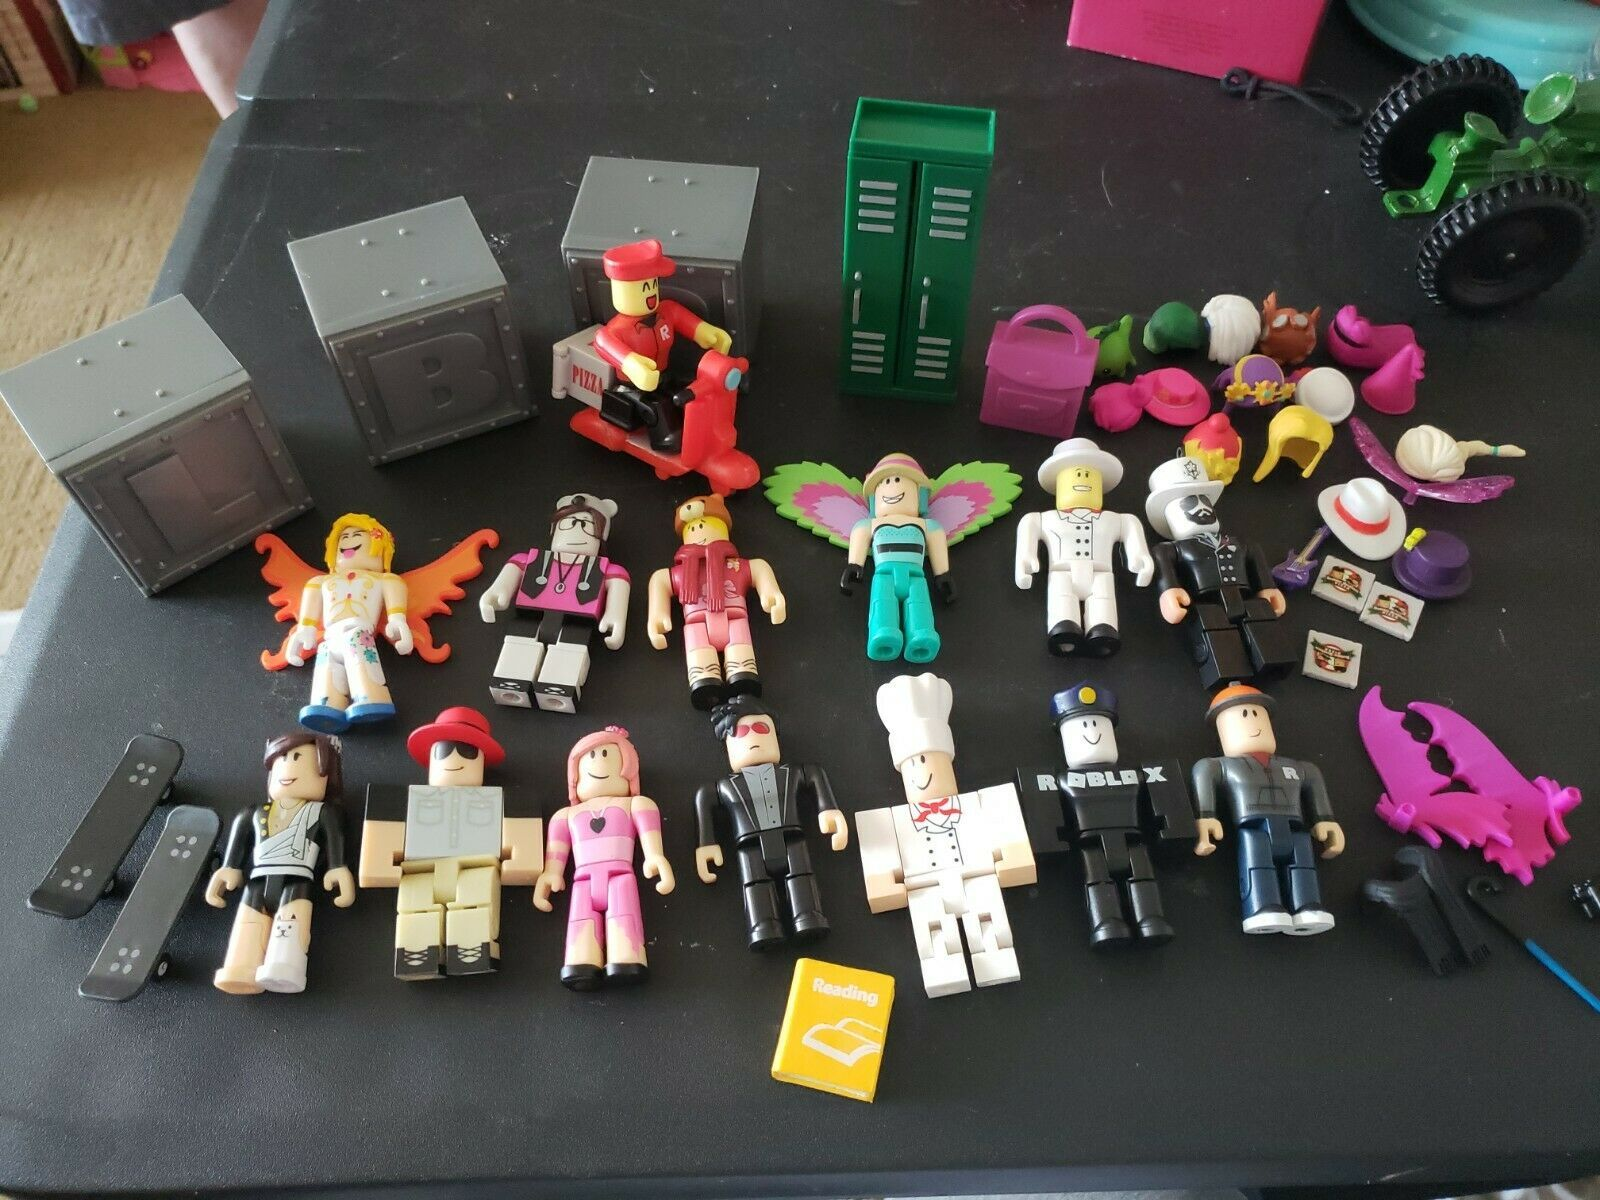 Roblox Loose Figure Toy Lot Of 14 Figures Accessories Pizza Scooter Chef Wings In 2020 Adoption Party Roblox Party